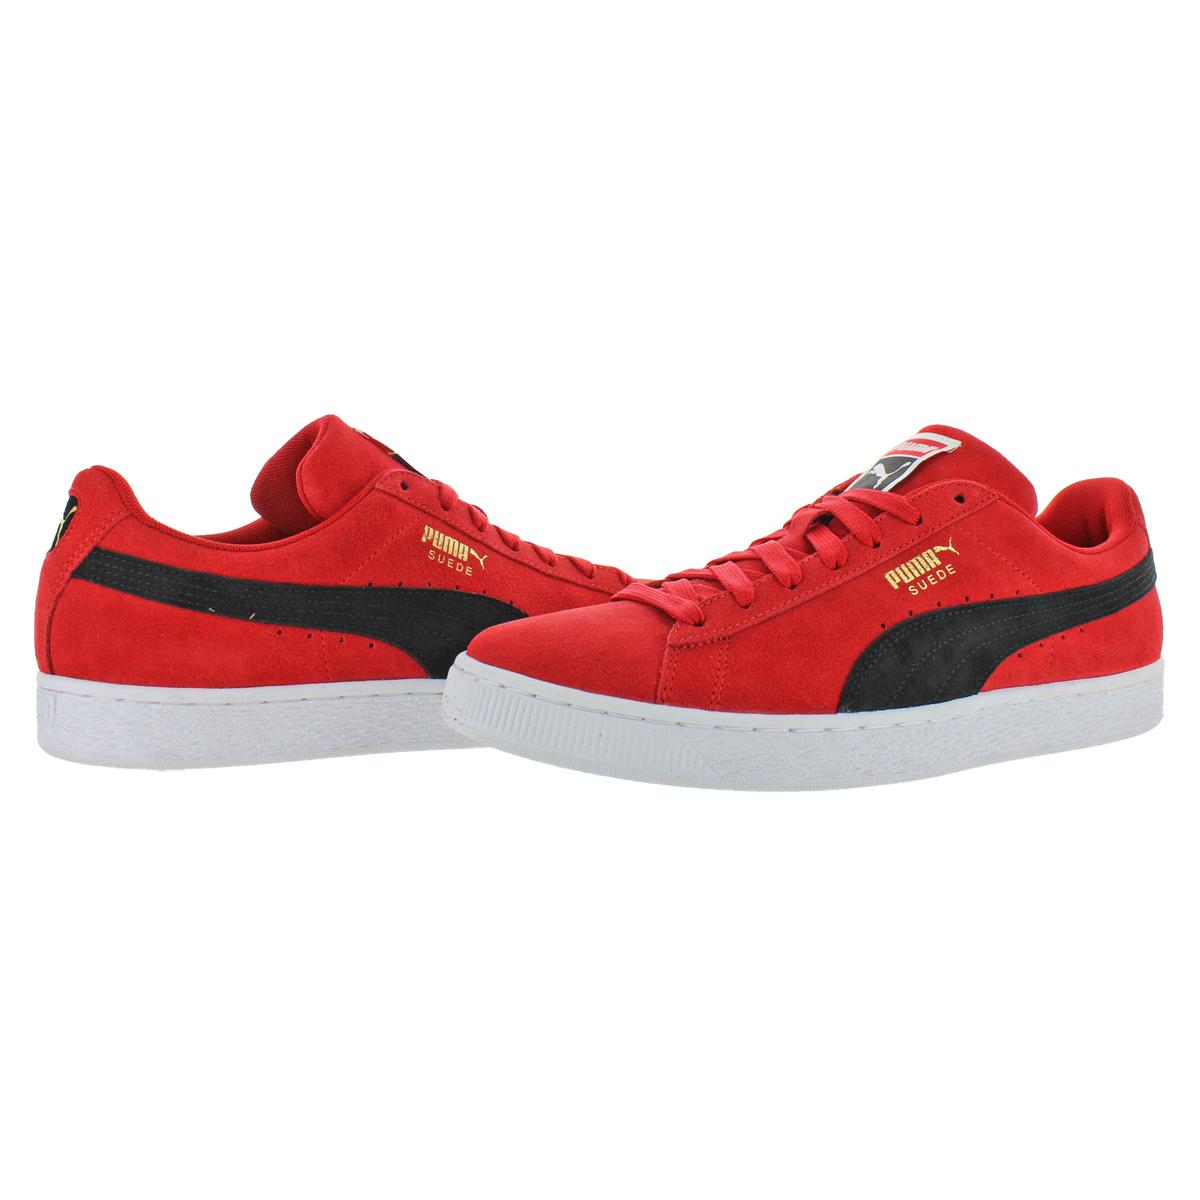 Puma-Suede-Classic-Men-039-s-Fashion-Sneakers-Shoes thumbnail 45